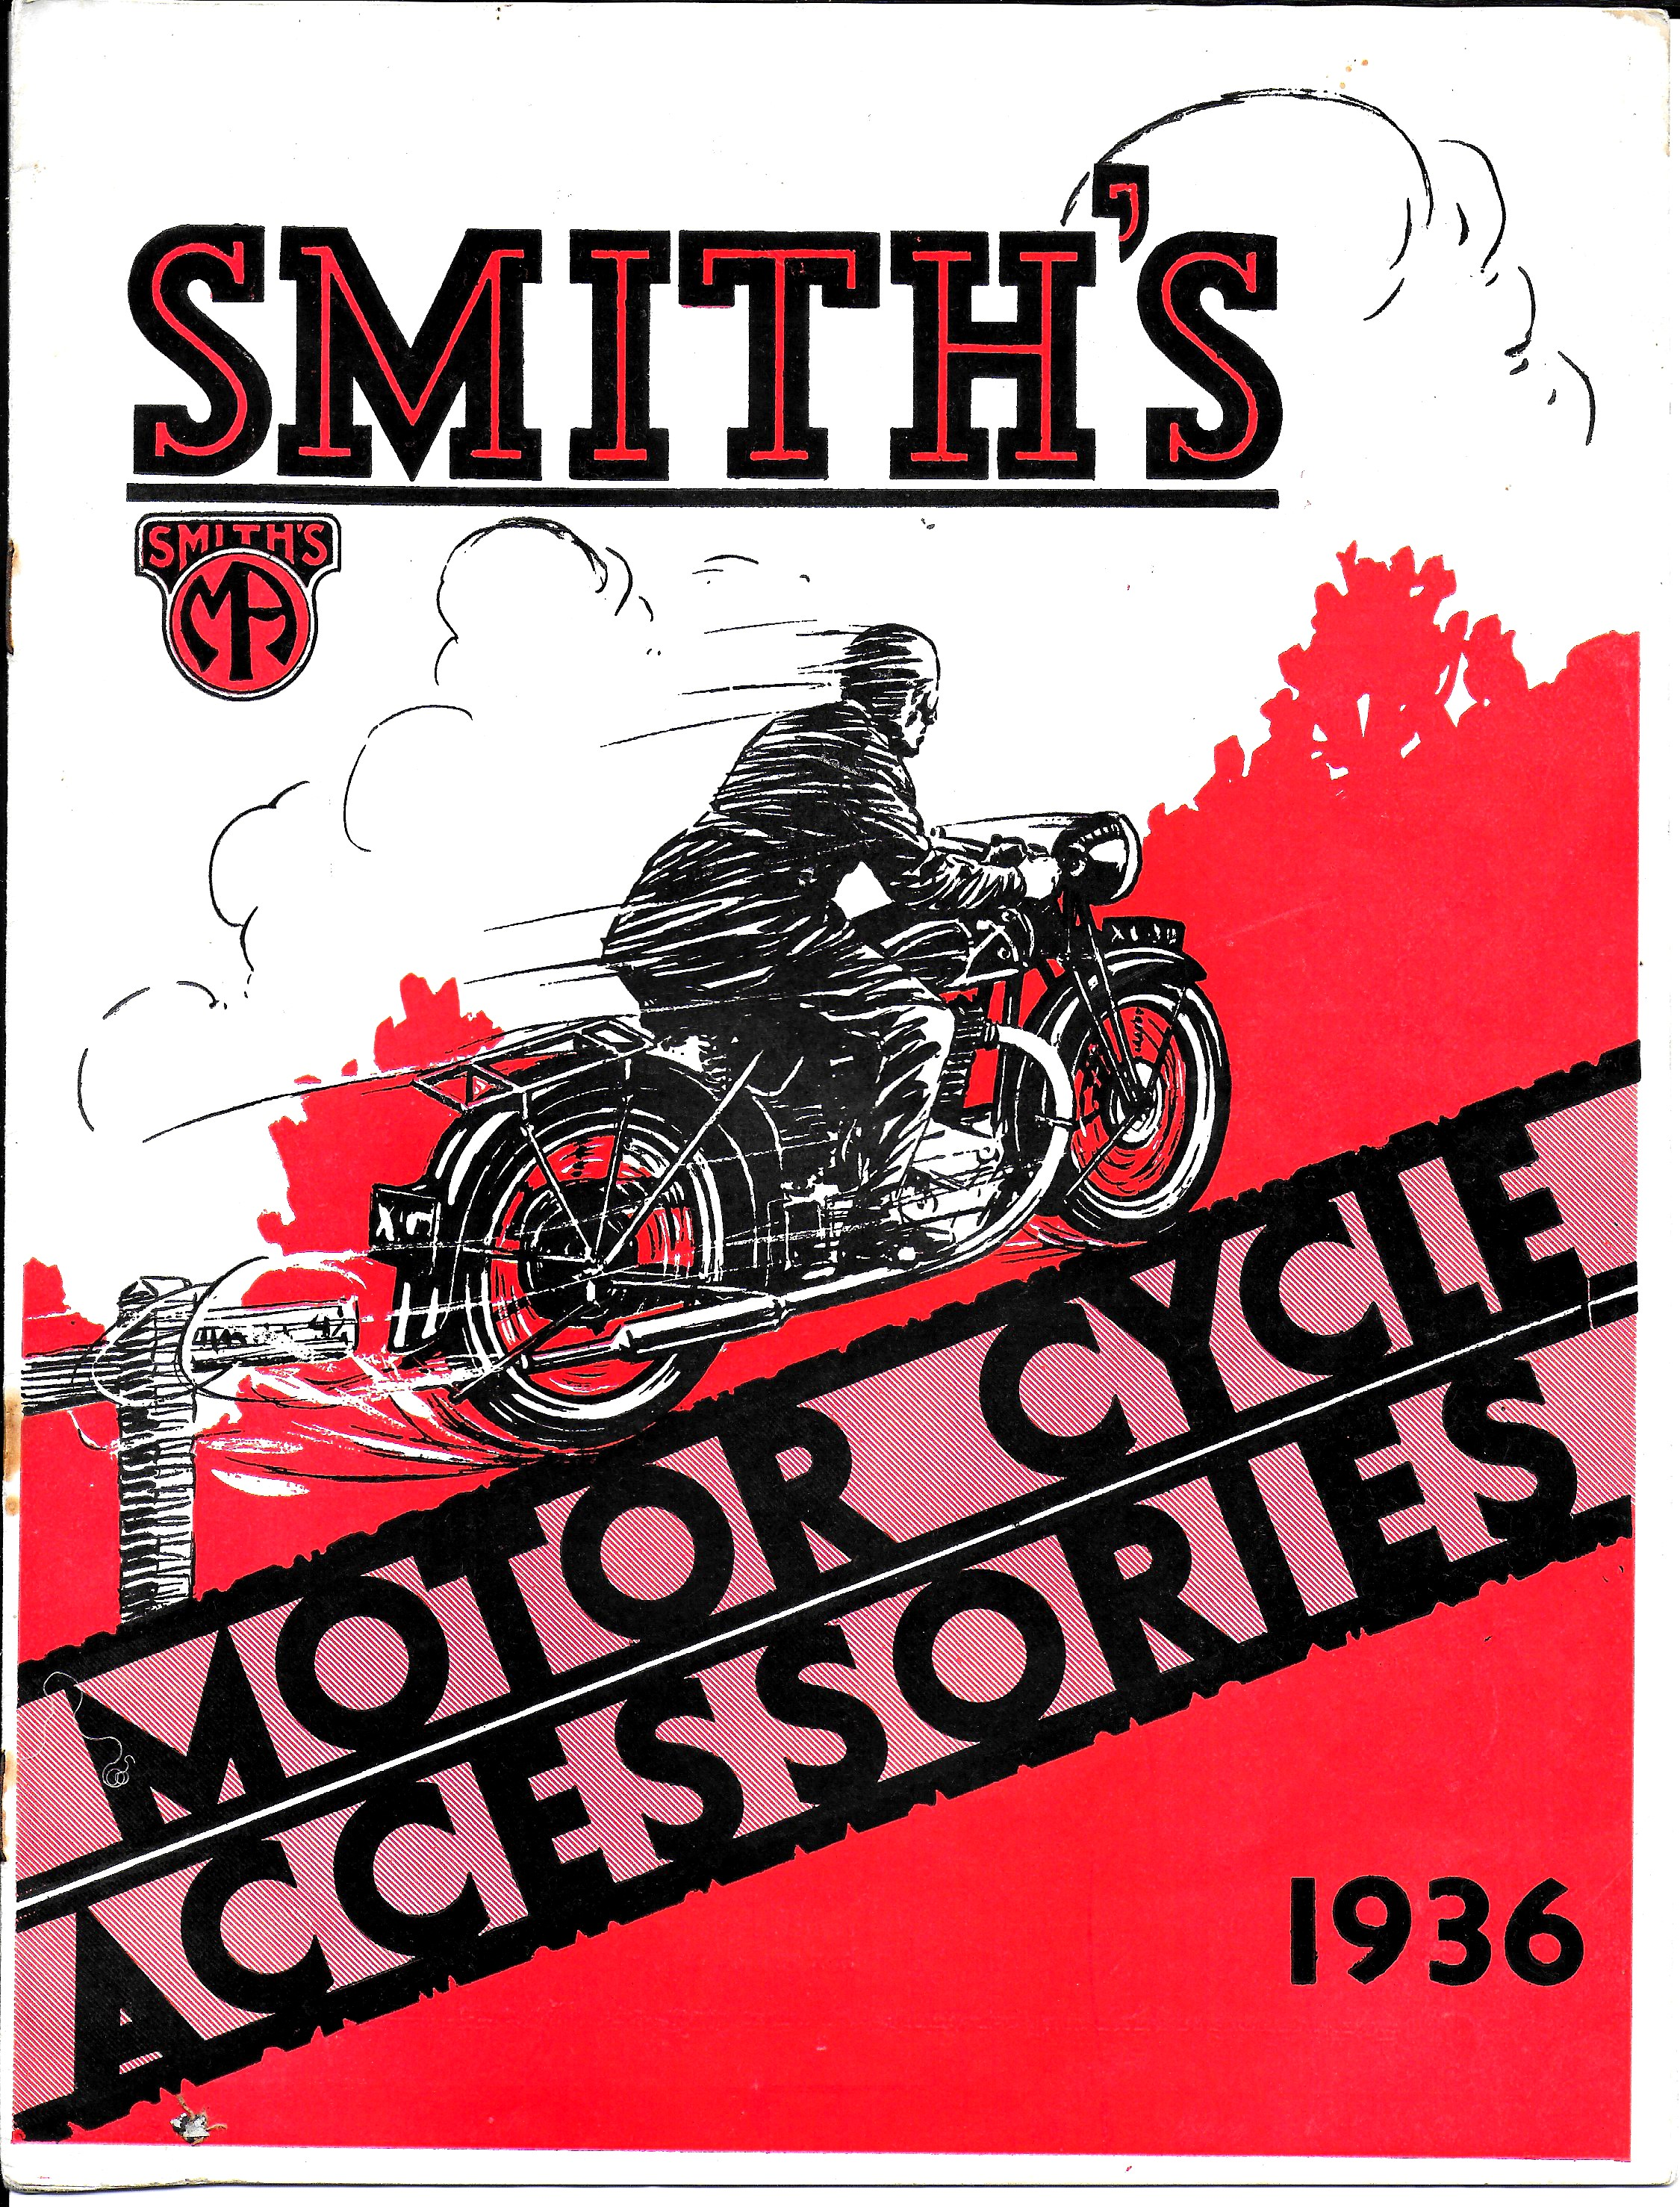 Smiths Motorcycle accessories catalogue 1936